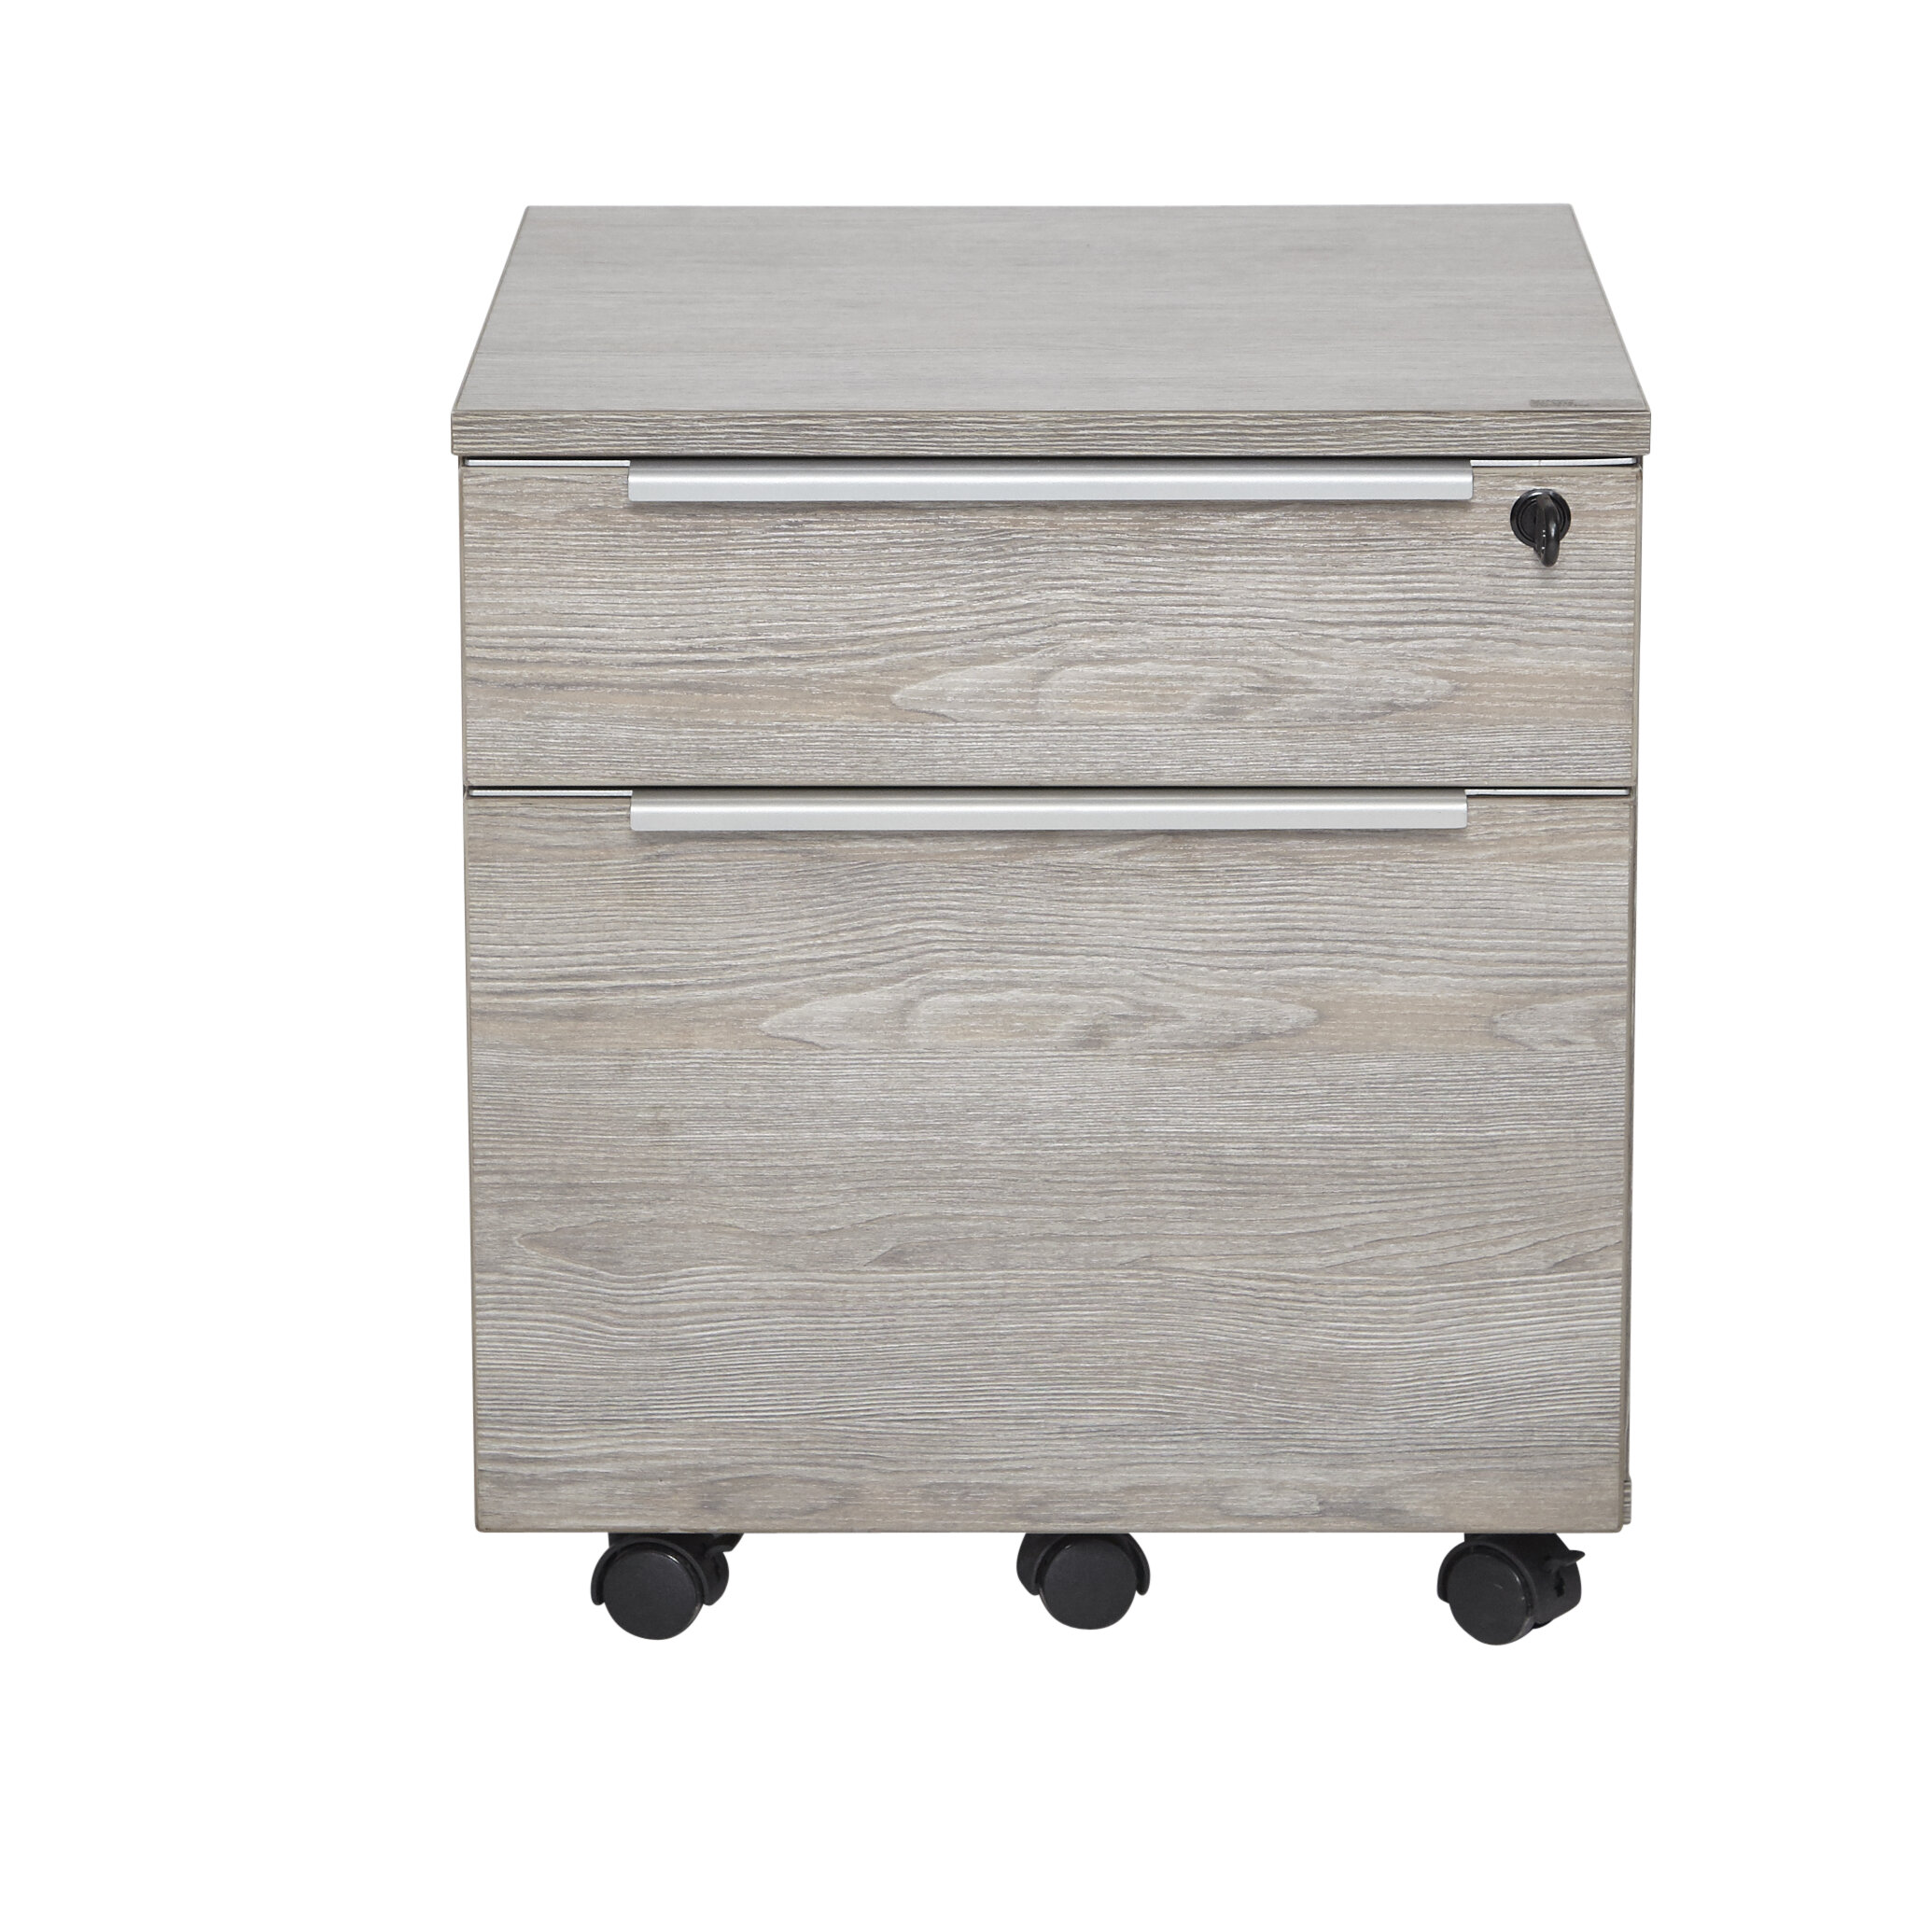 Ose 2 Drawer Mobile Lateral Filing Cabinet